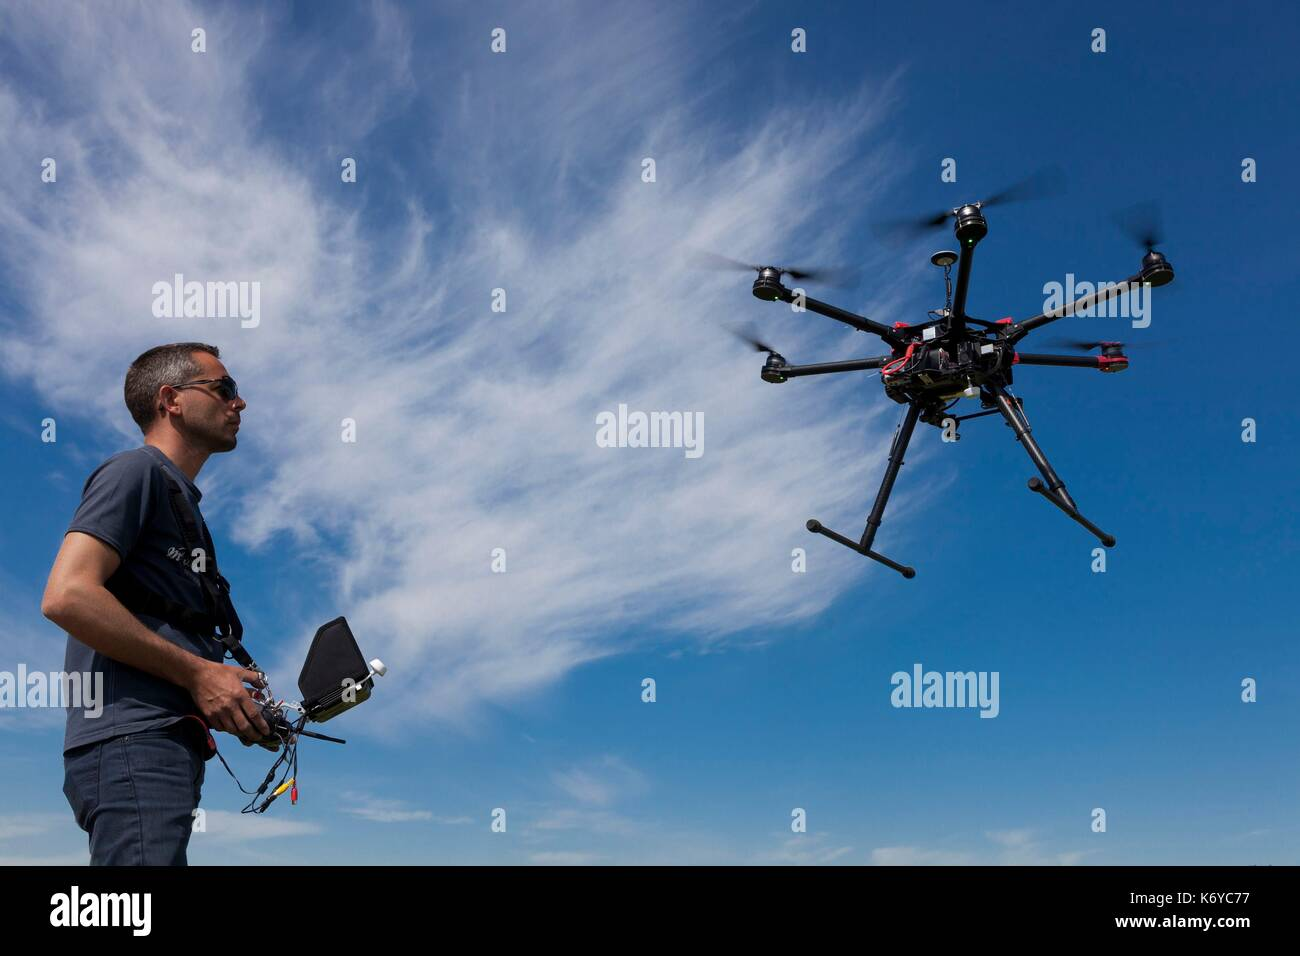 France, Bouches du Rhone, professional pilot of a drone or teleopilot in training with a certified DJI S900 hexacopter drone able to embark photo or video equipment (Model Release ok) - Stock Image